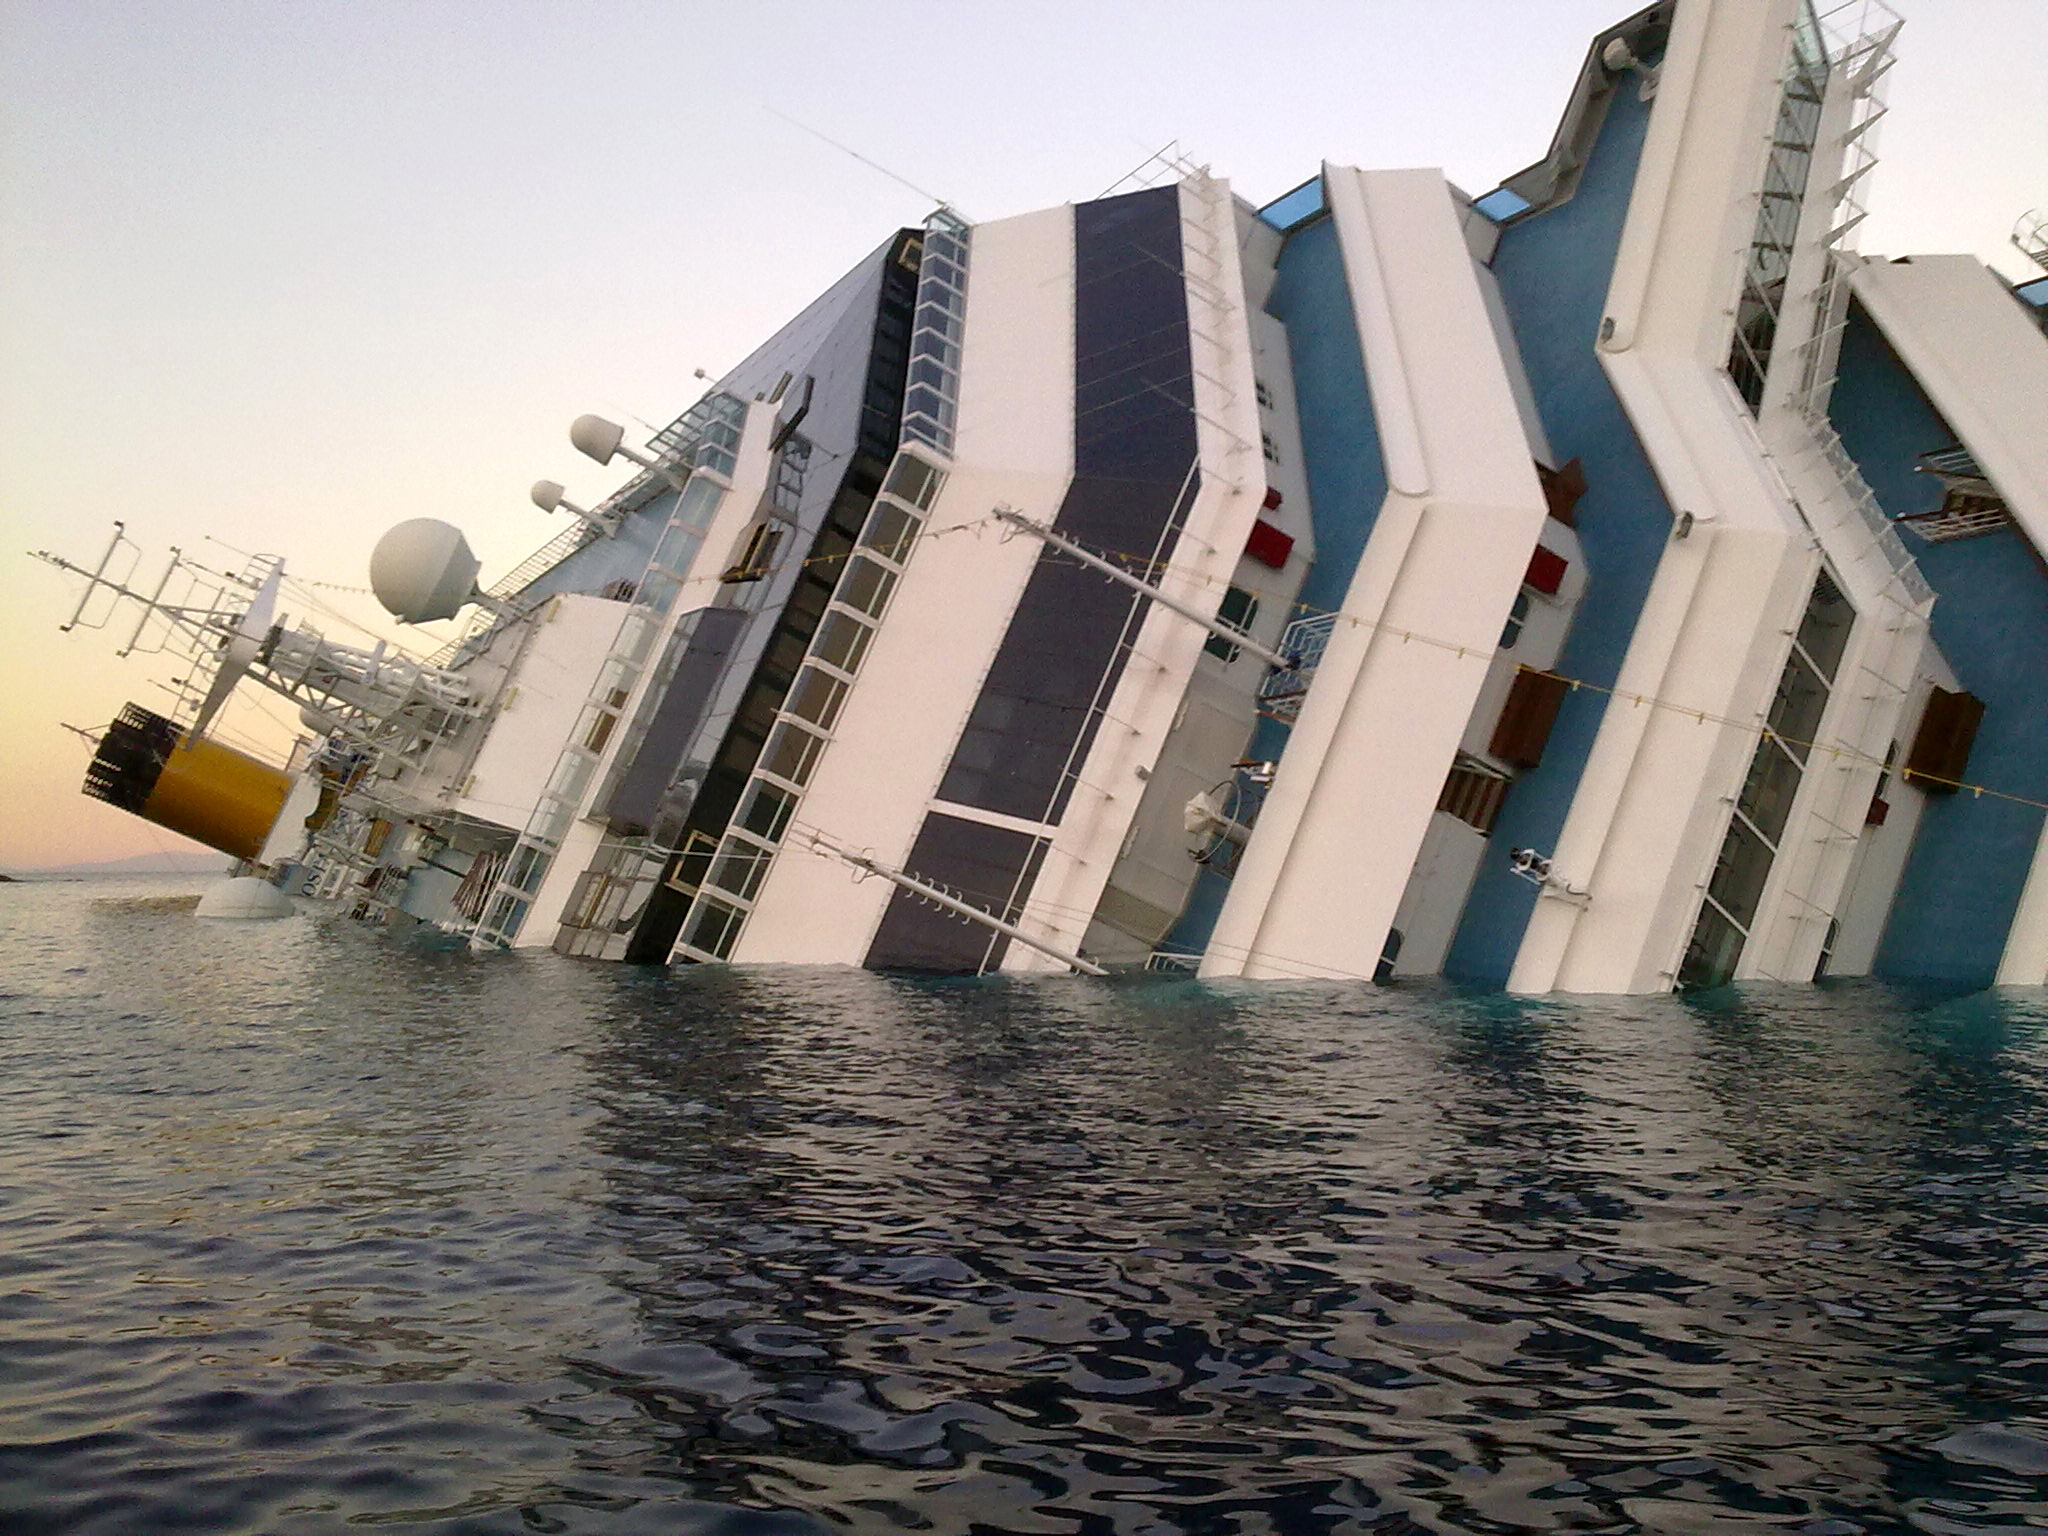 Is That Ethical? Italian Cruise Disaster Sparks Leadership Questions